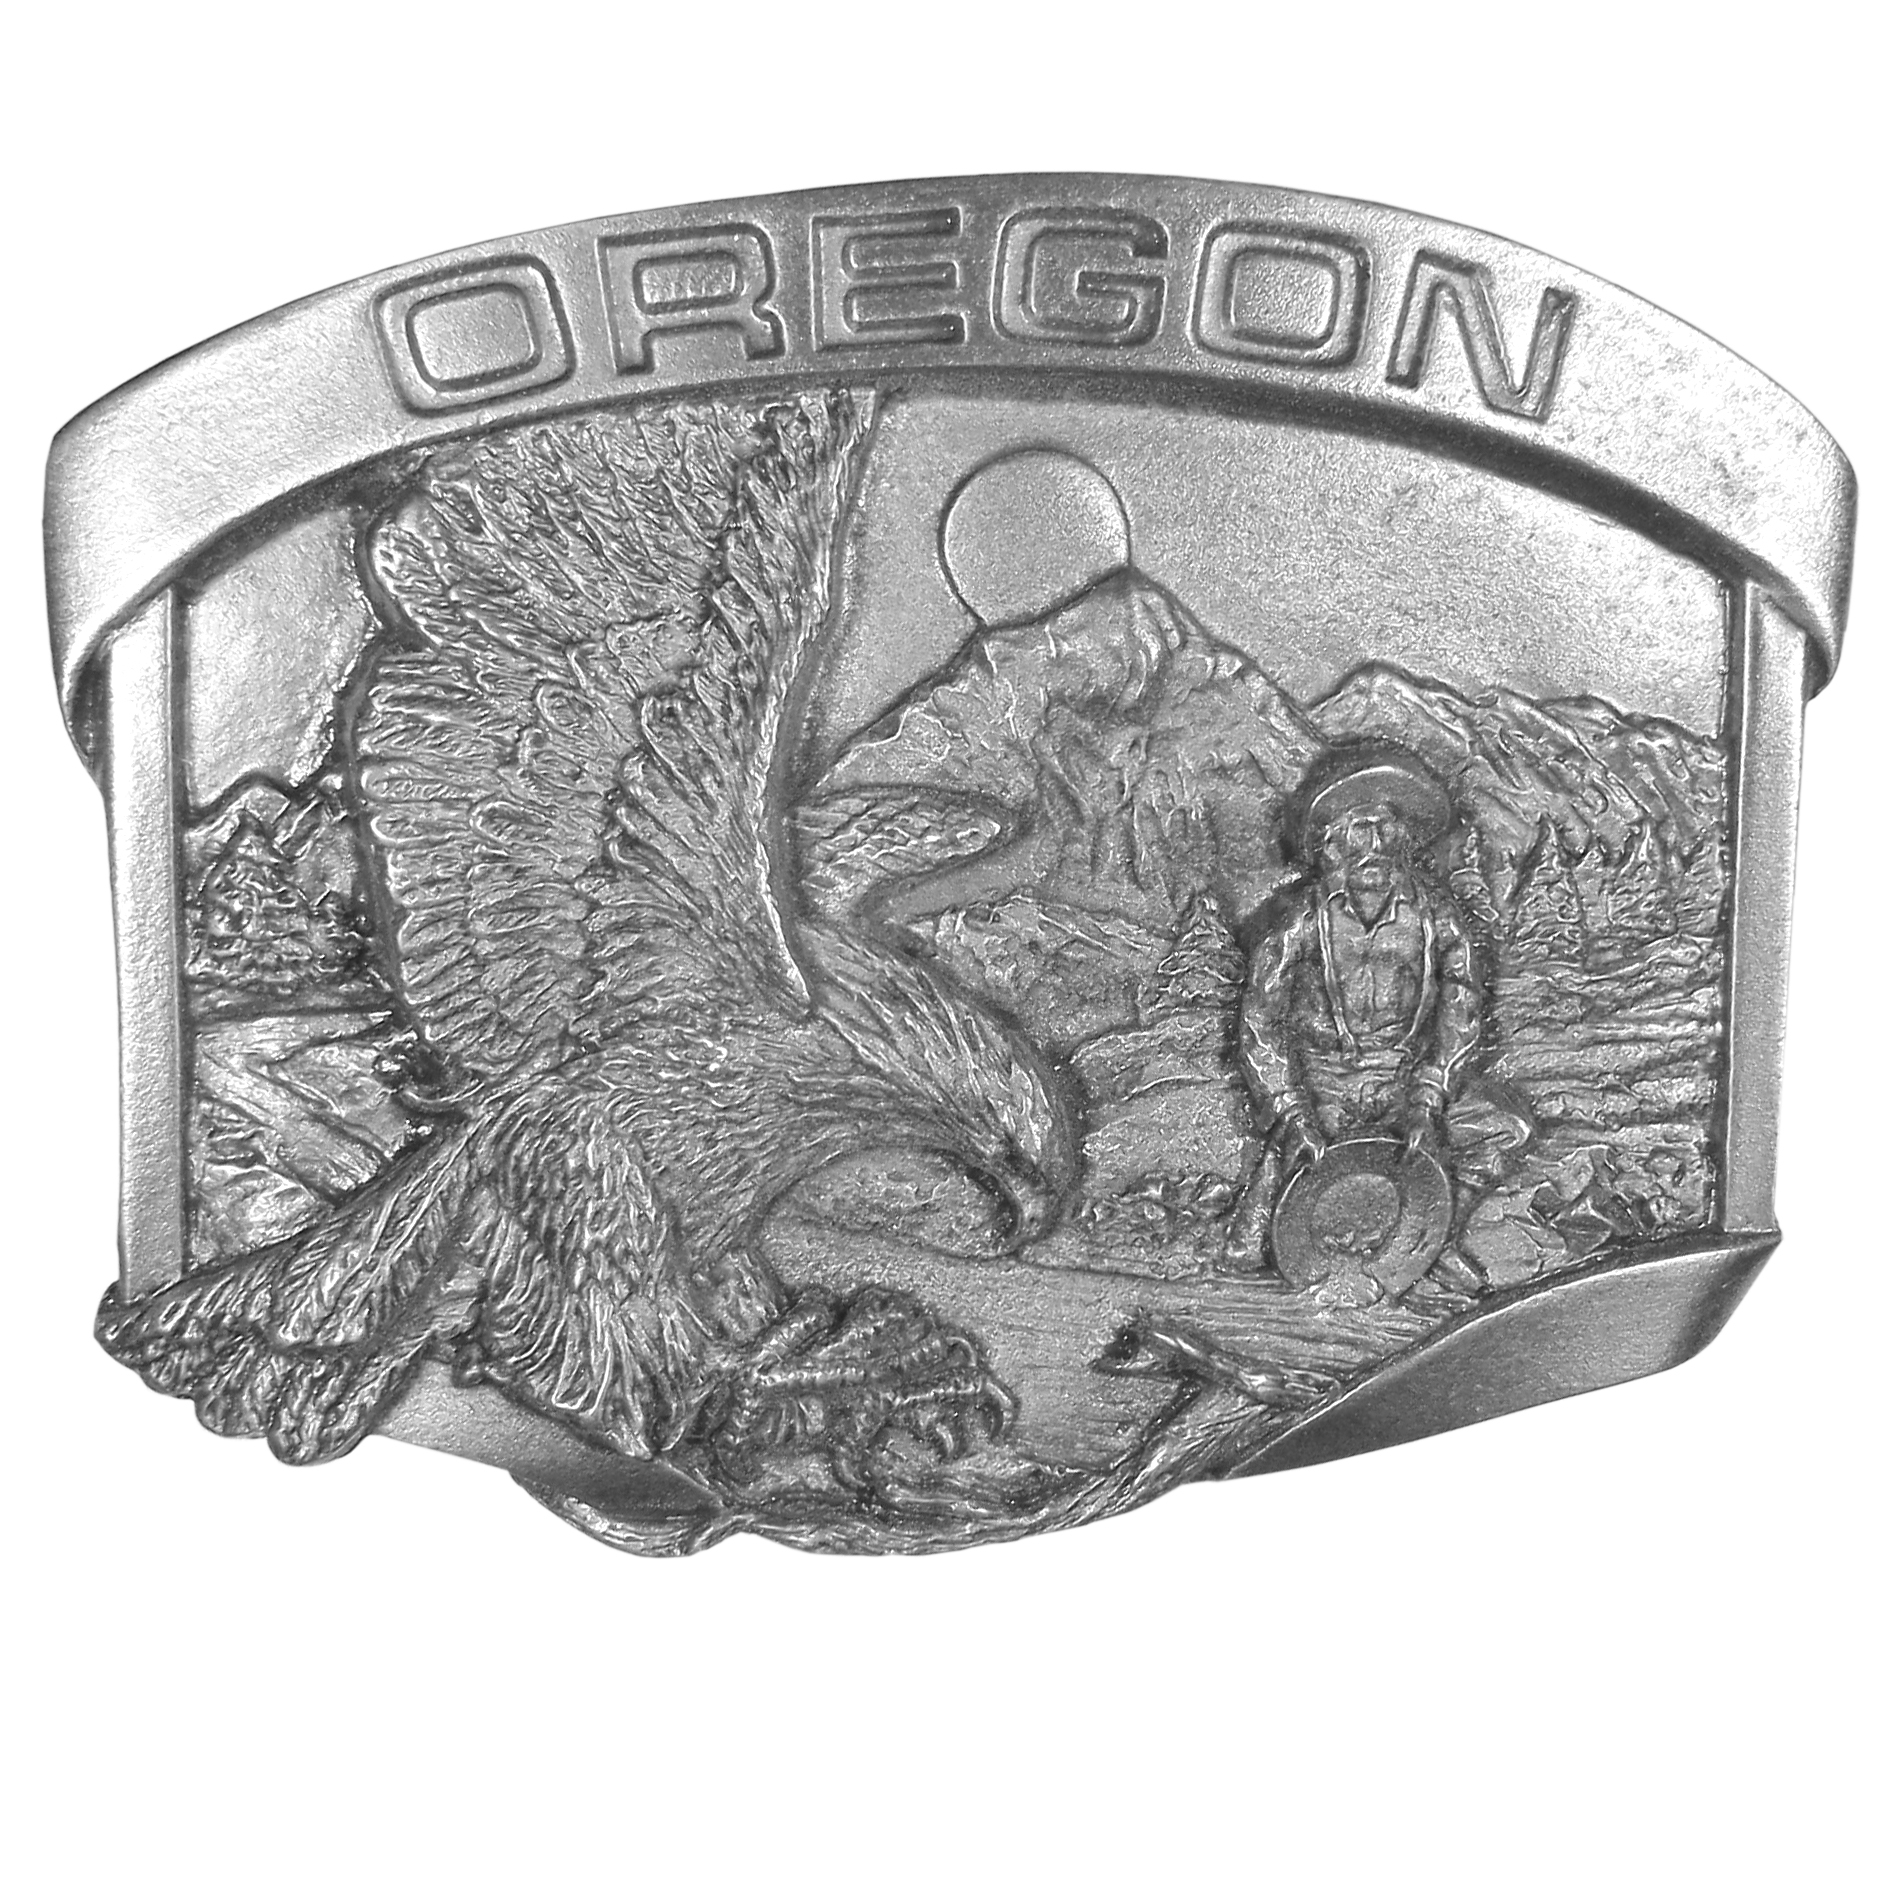 """Oregon Miner Antiqued Belt Buckle - An exquisitely designed image to celebrate the state of Oregon. Antiqued buckle has a banner with """"Oregon"""" across the top. Images include an eagle with it's claws out to capture prey, a gold miner panning for gold, mountains, trees, the moon and a river. This exquisite buckle is made of fully cast metal with a standard bale that fits up to 2"""" belts."""